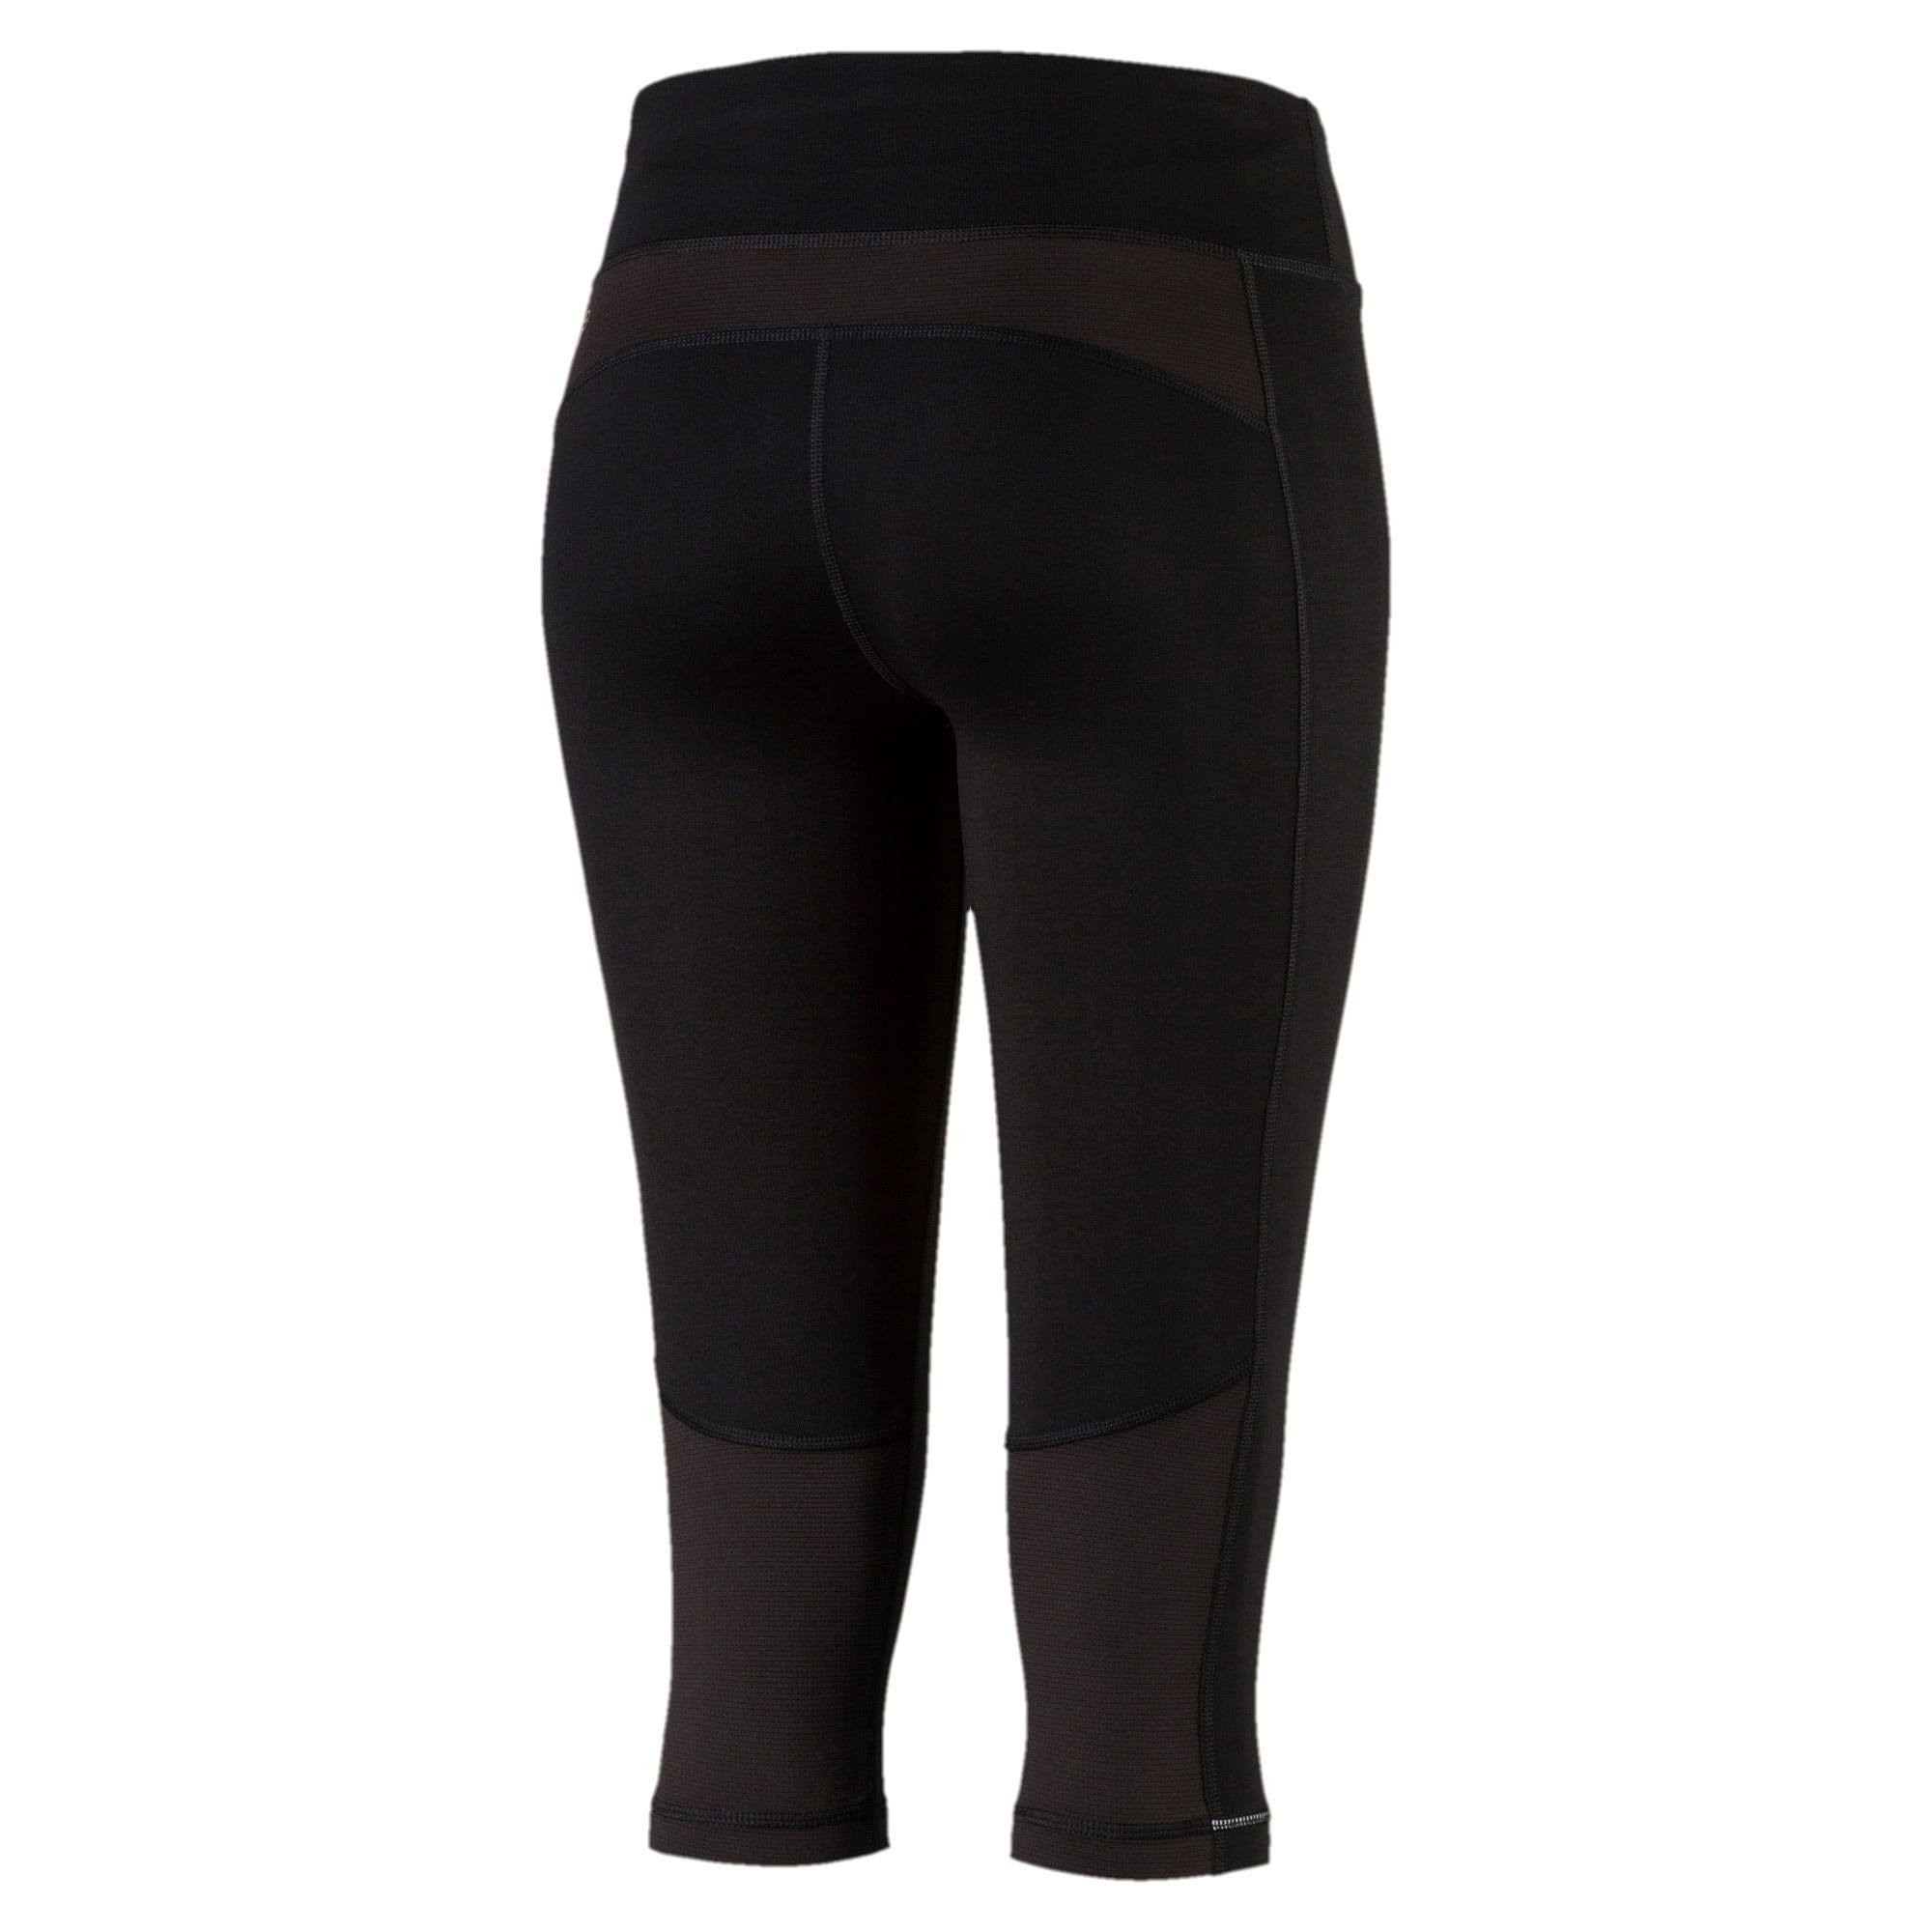 Thumbnail 5 of Running Women's 3/4 Tights, Puma Black, medium-IND